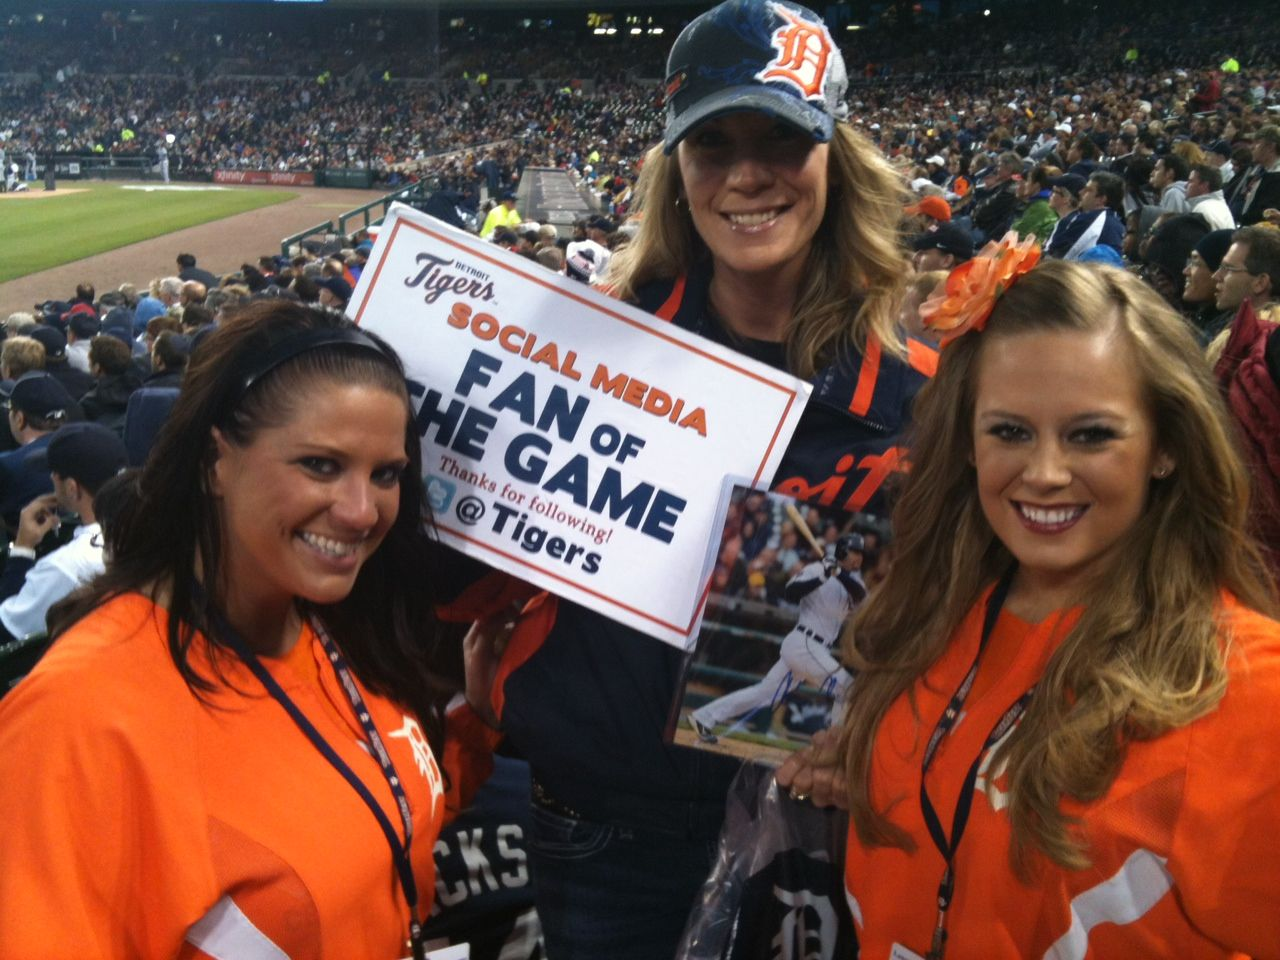 Tigers Fans Are Encouraged To Tweet Their Seat Location To Tigers For A Chance To Be The Social Media Fan Of The Game Mic Tiger Fans Tiger Love Social Media